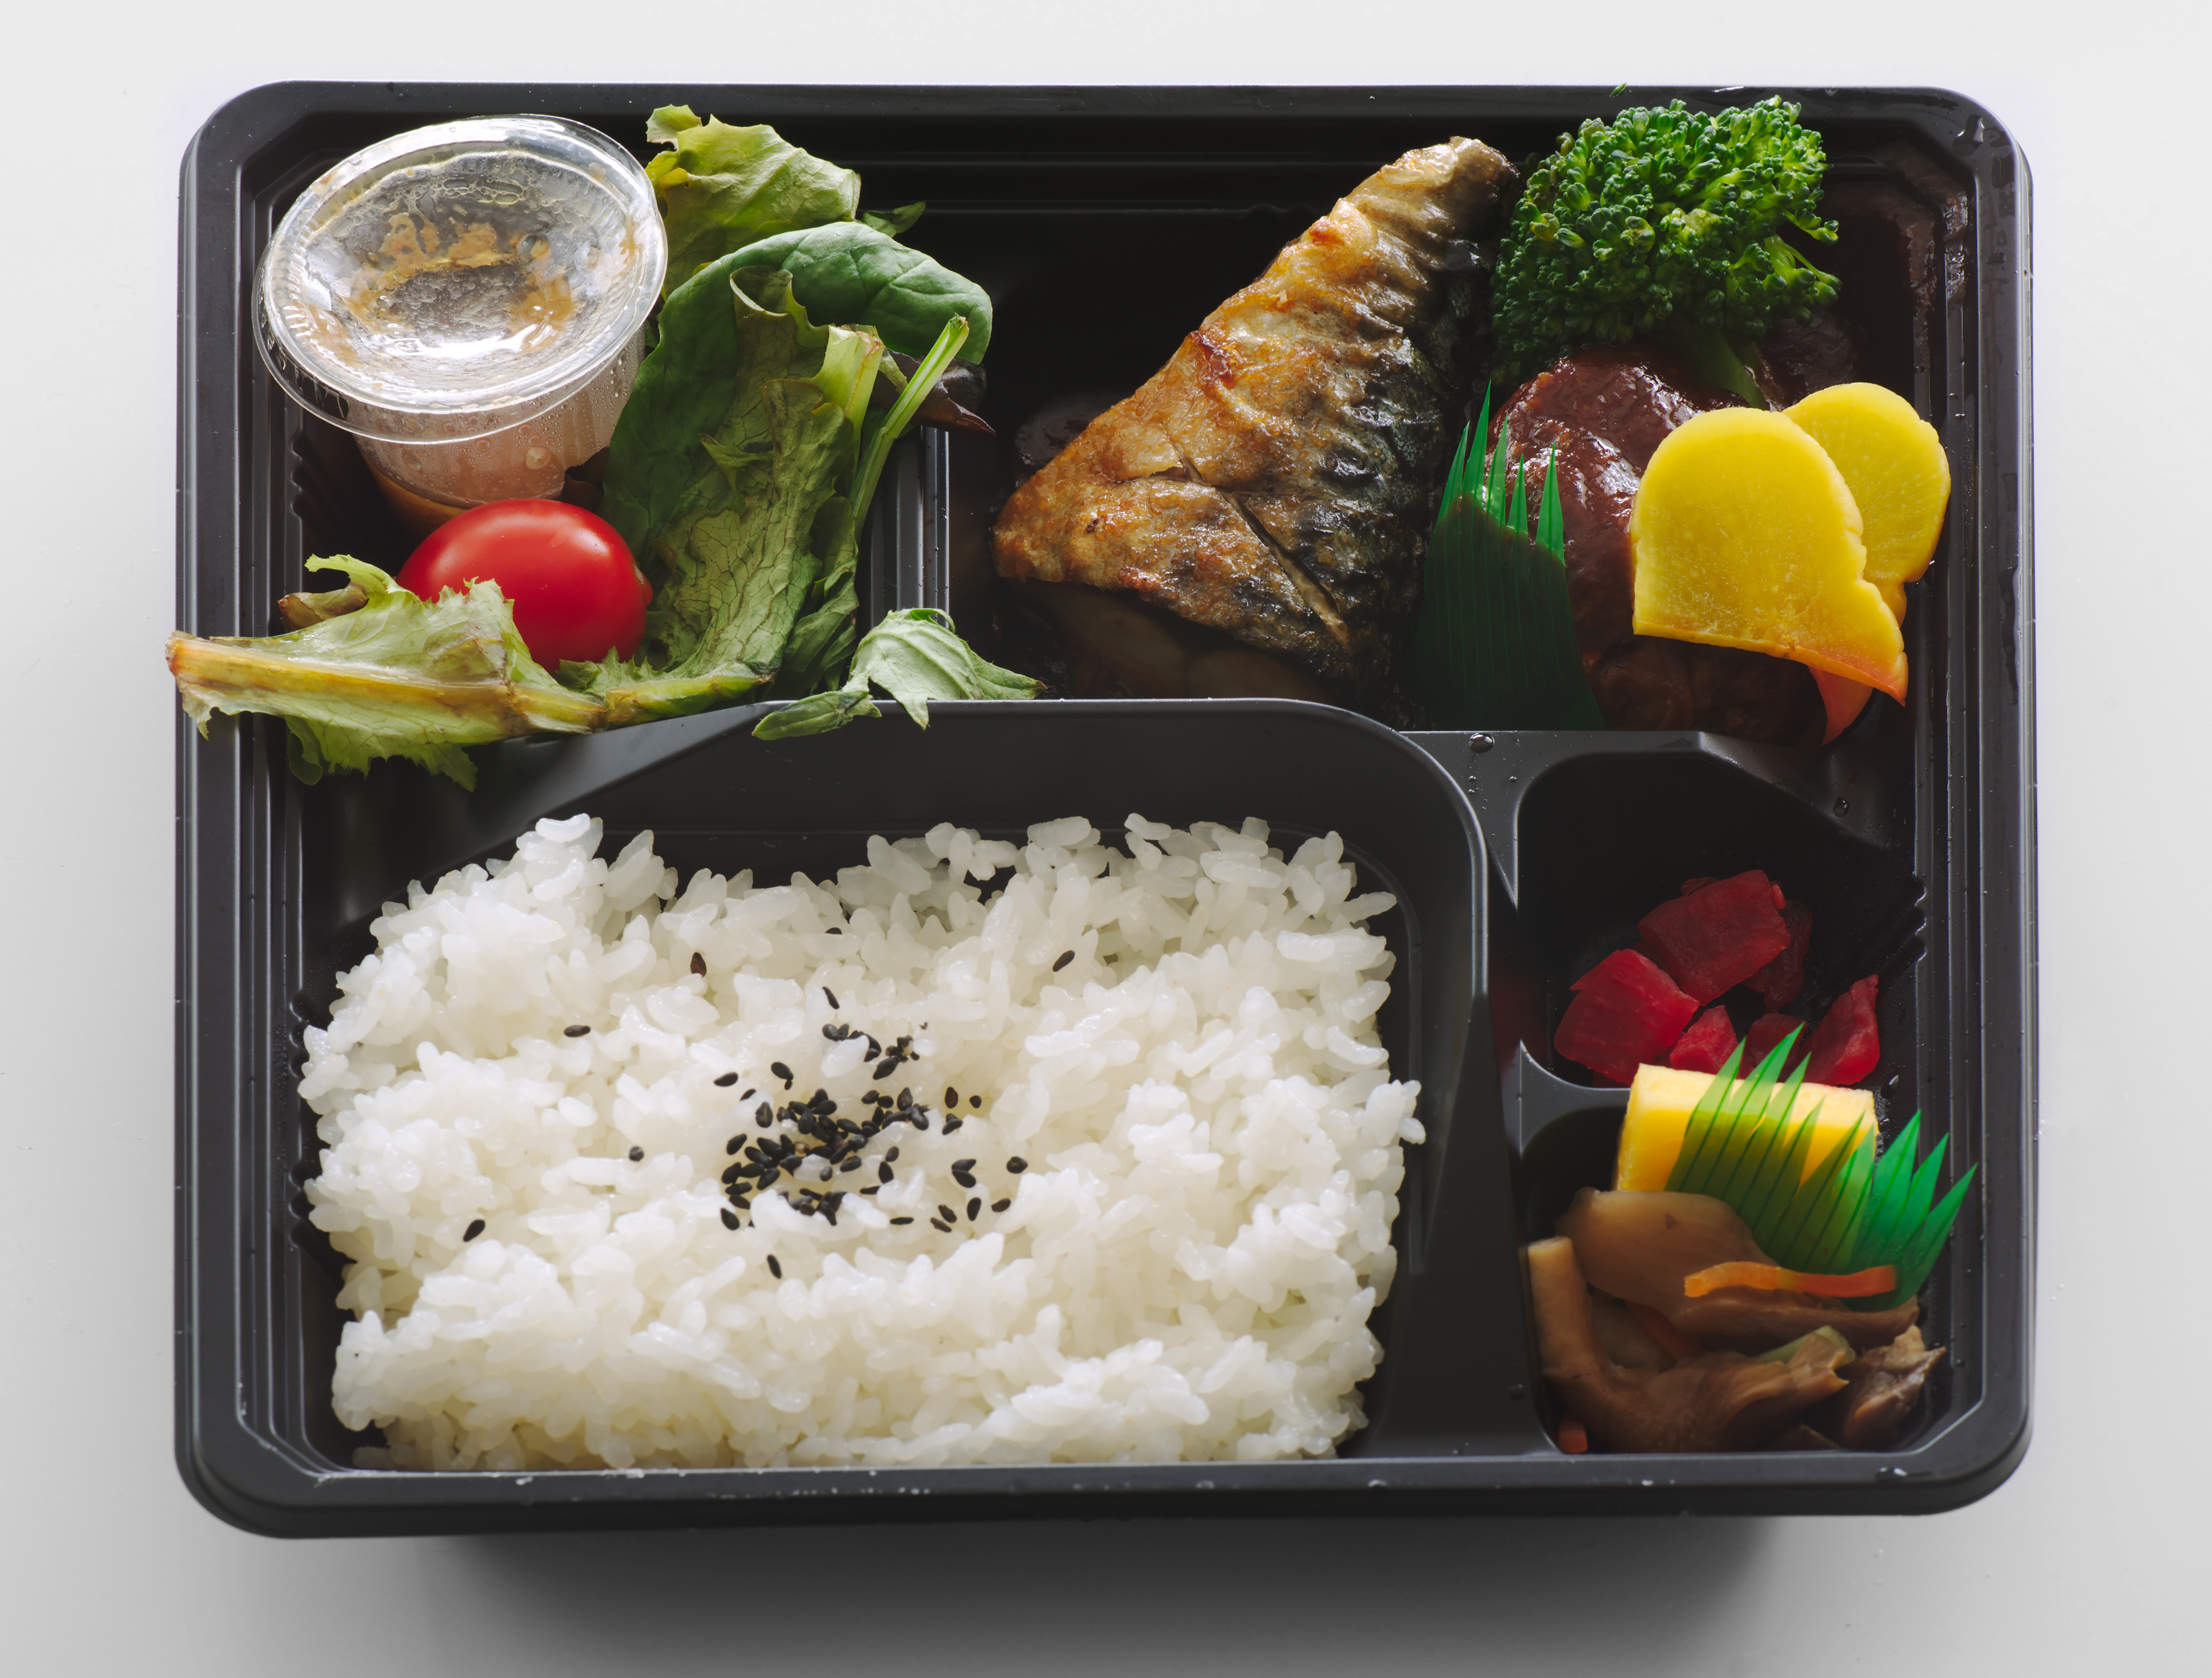 Lunch In A Box Bento Wikipedia